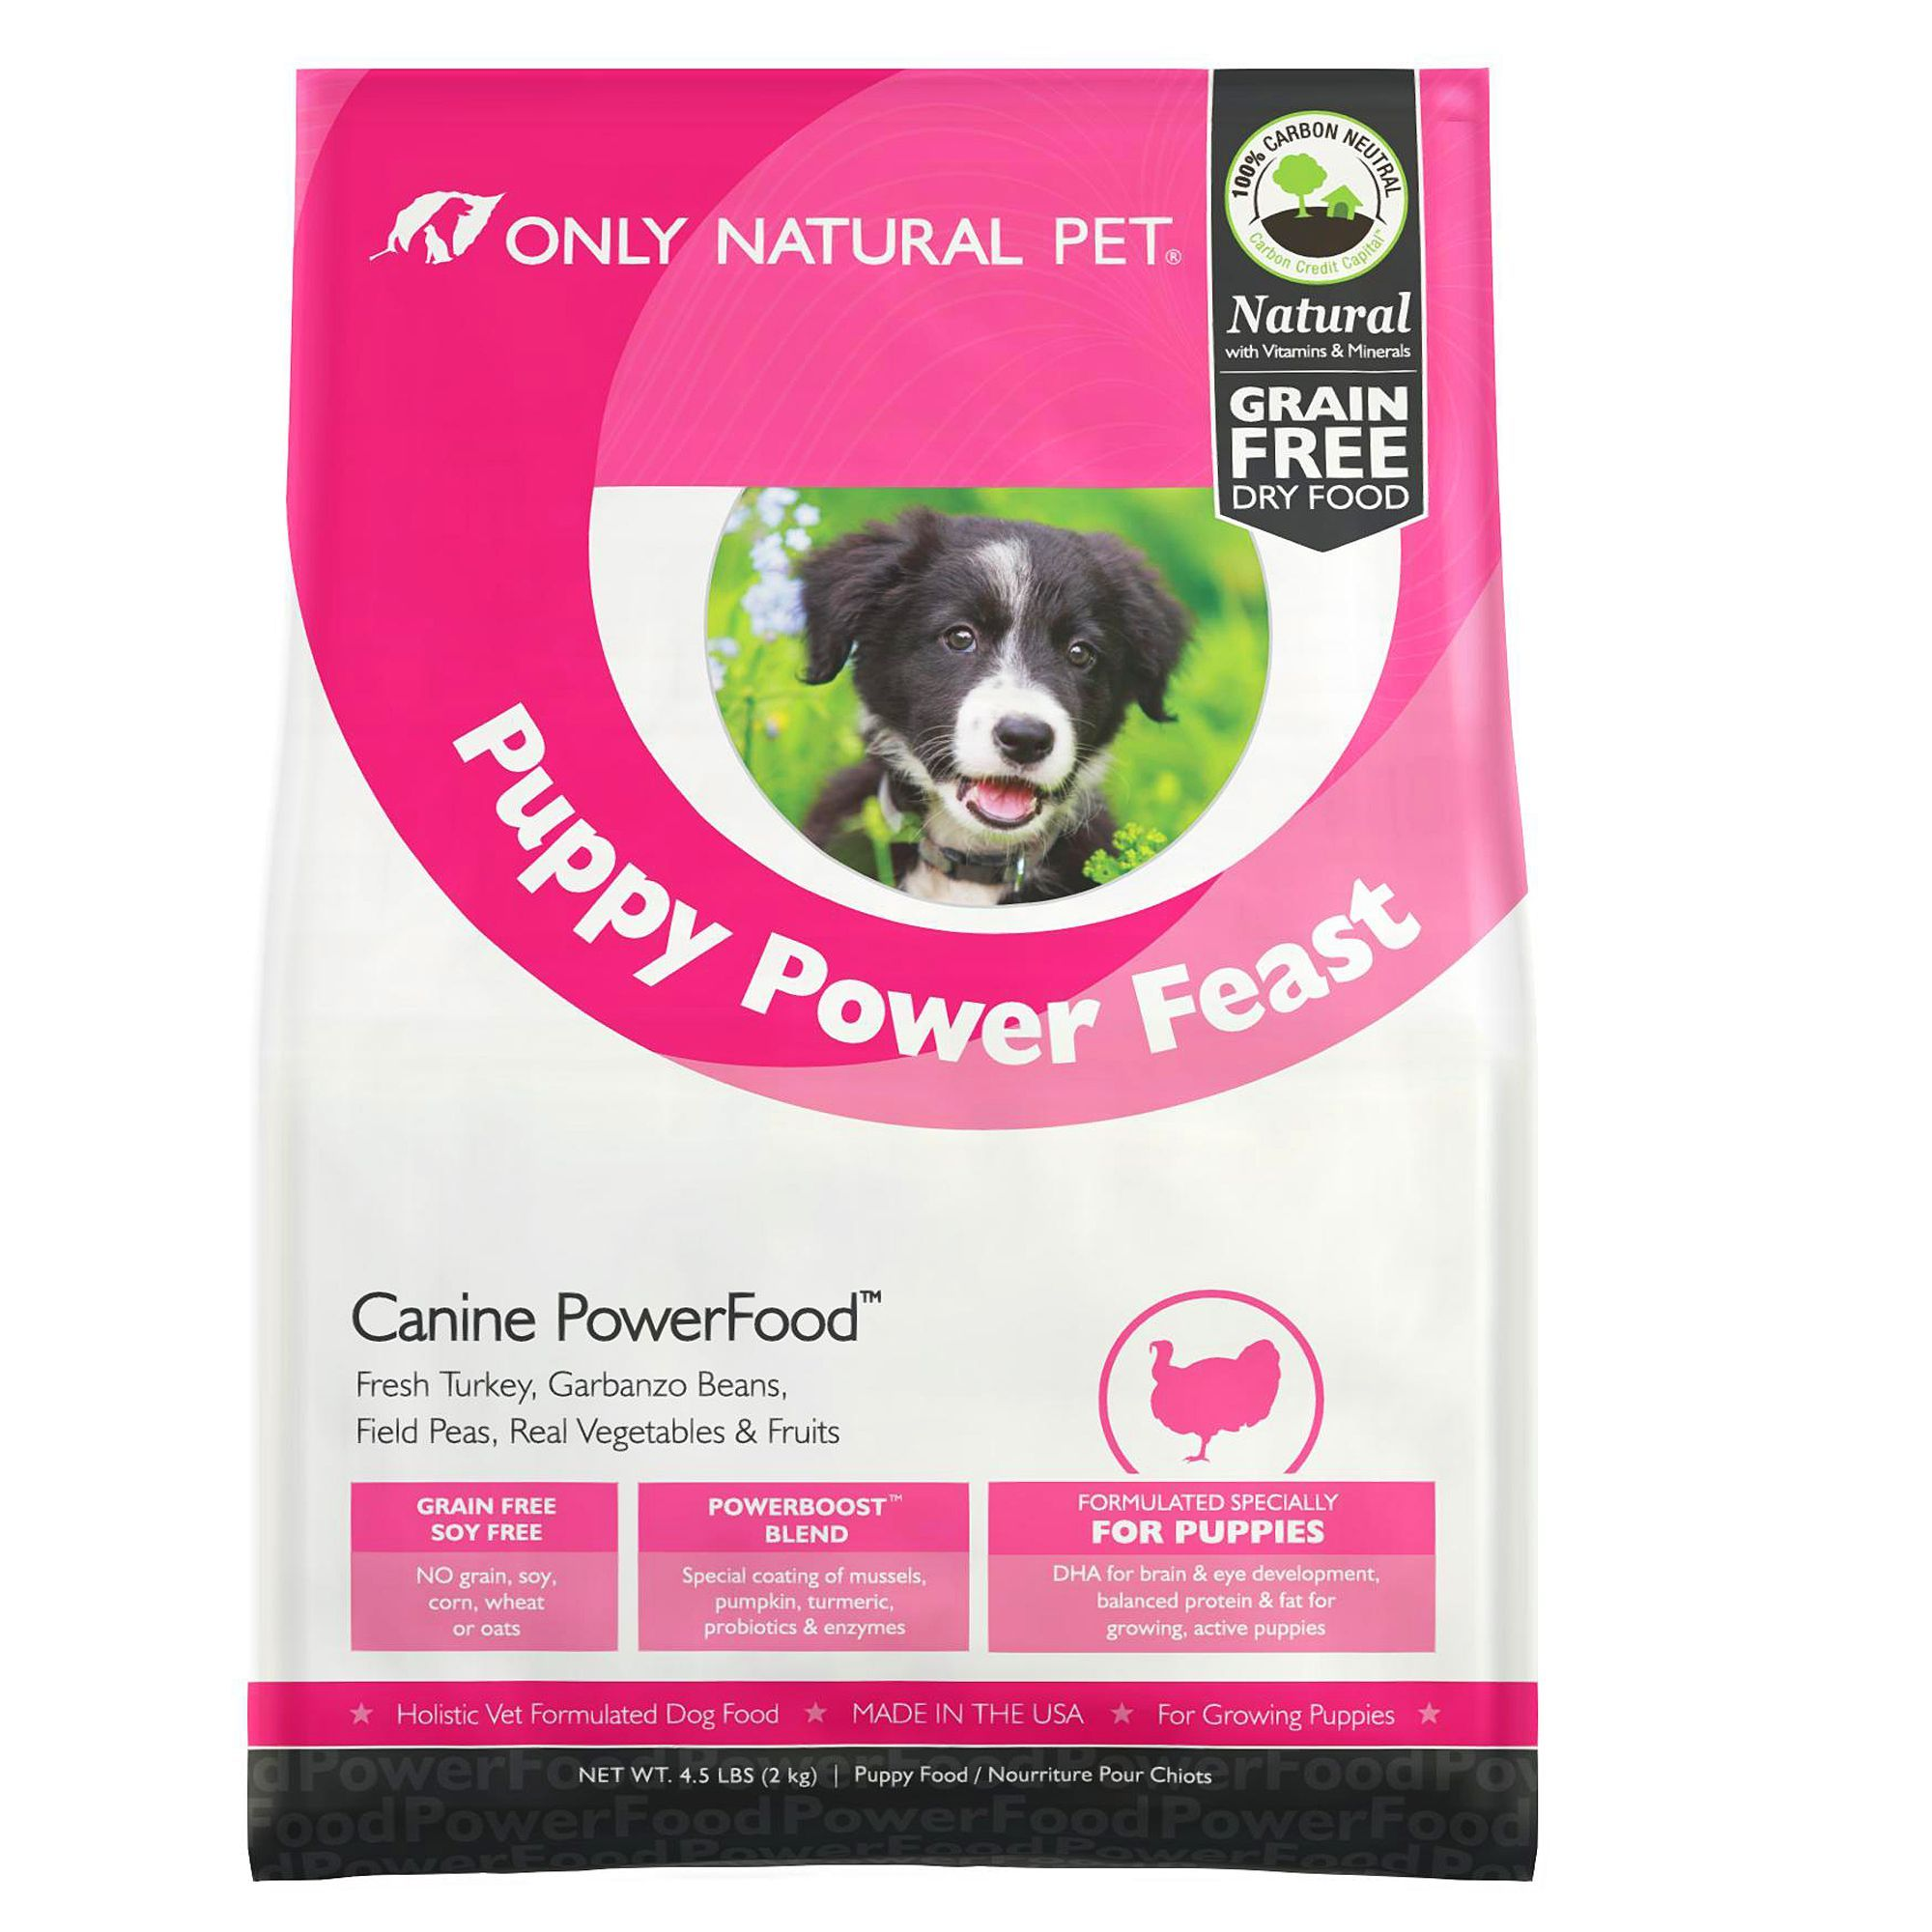 Only Natural Pet Canine Powerfood Puppy Food Limited Ingredient